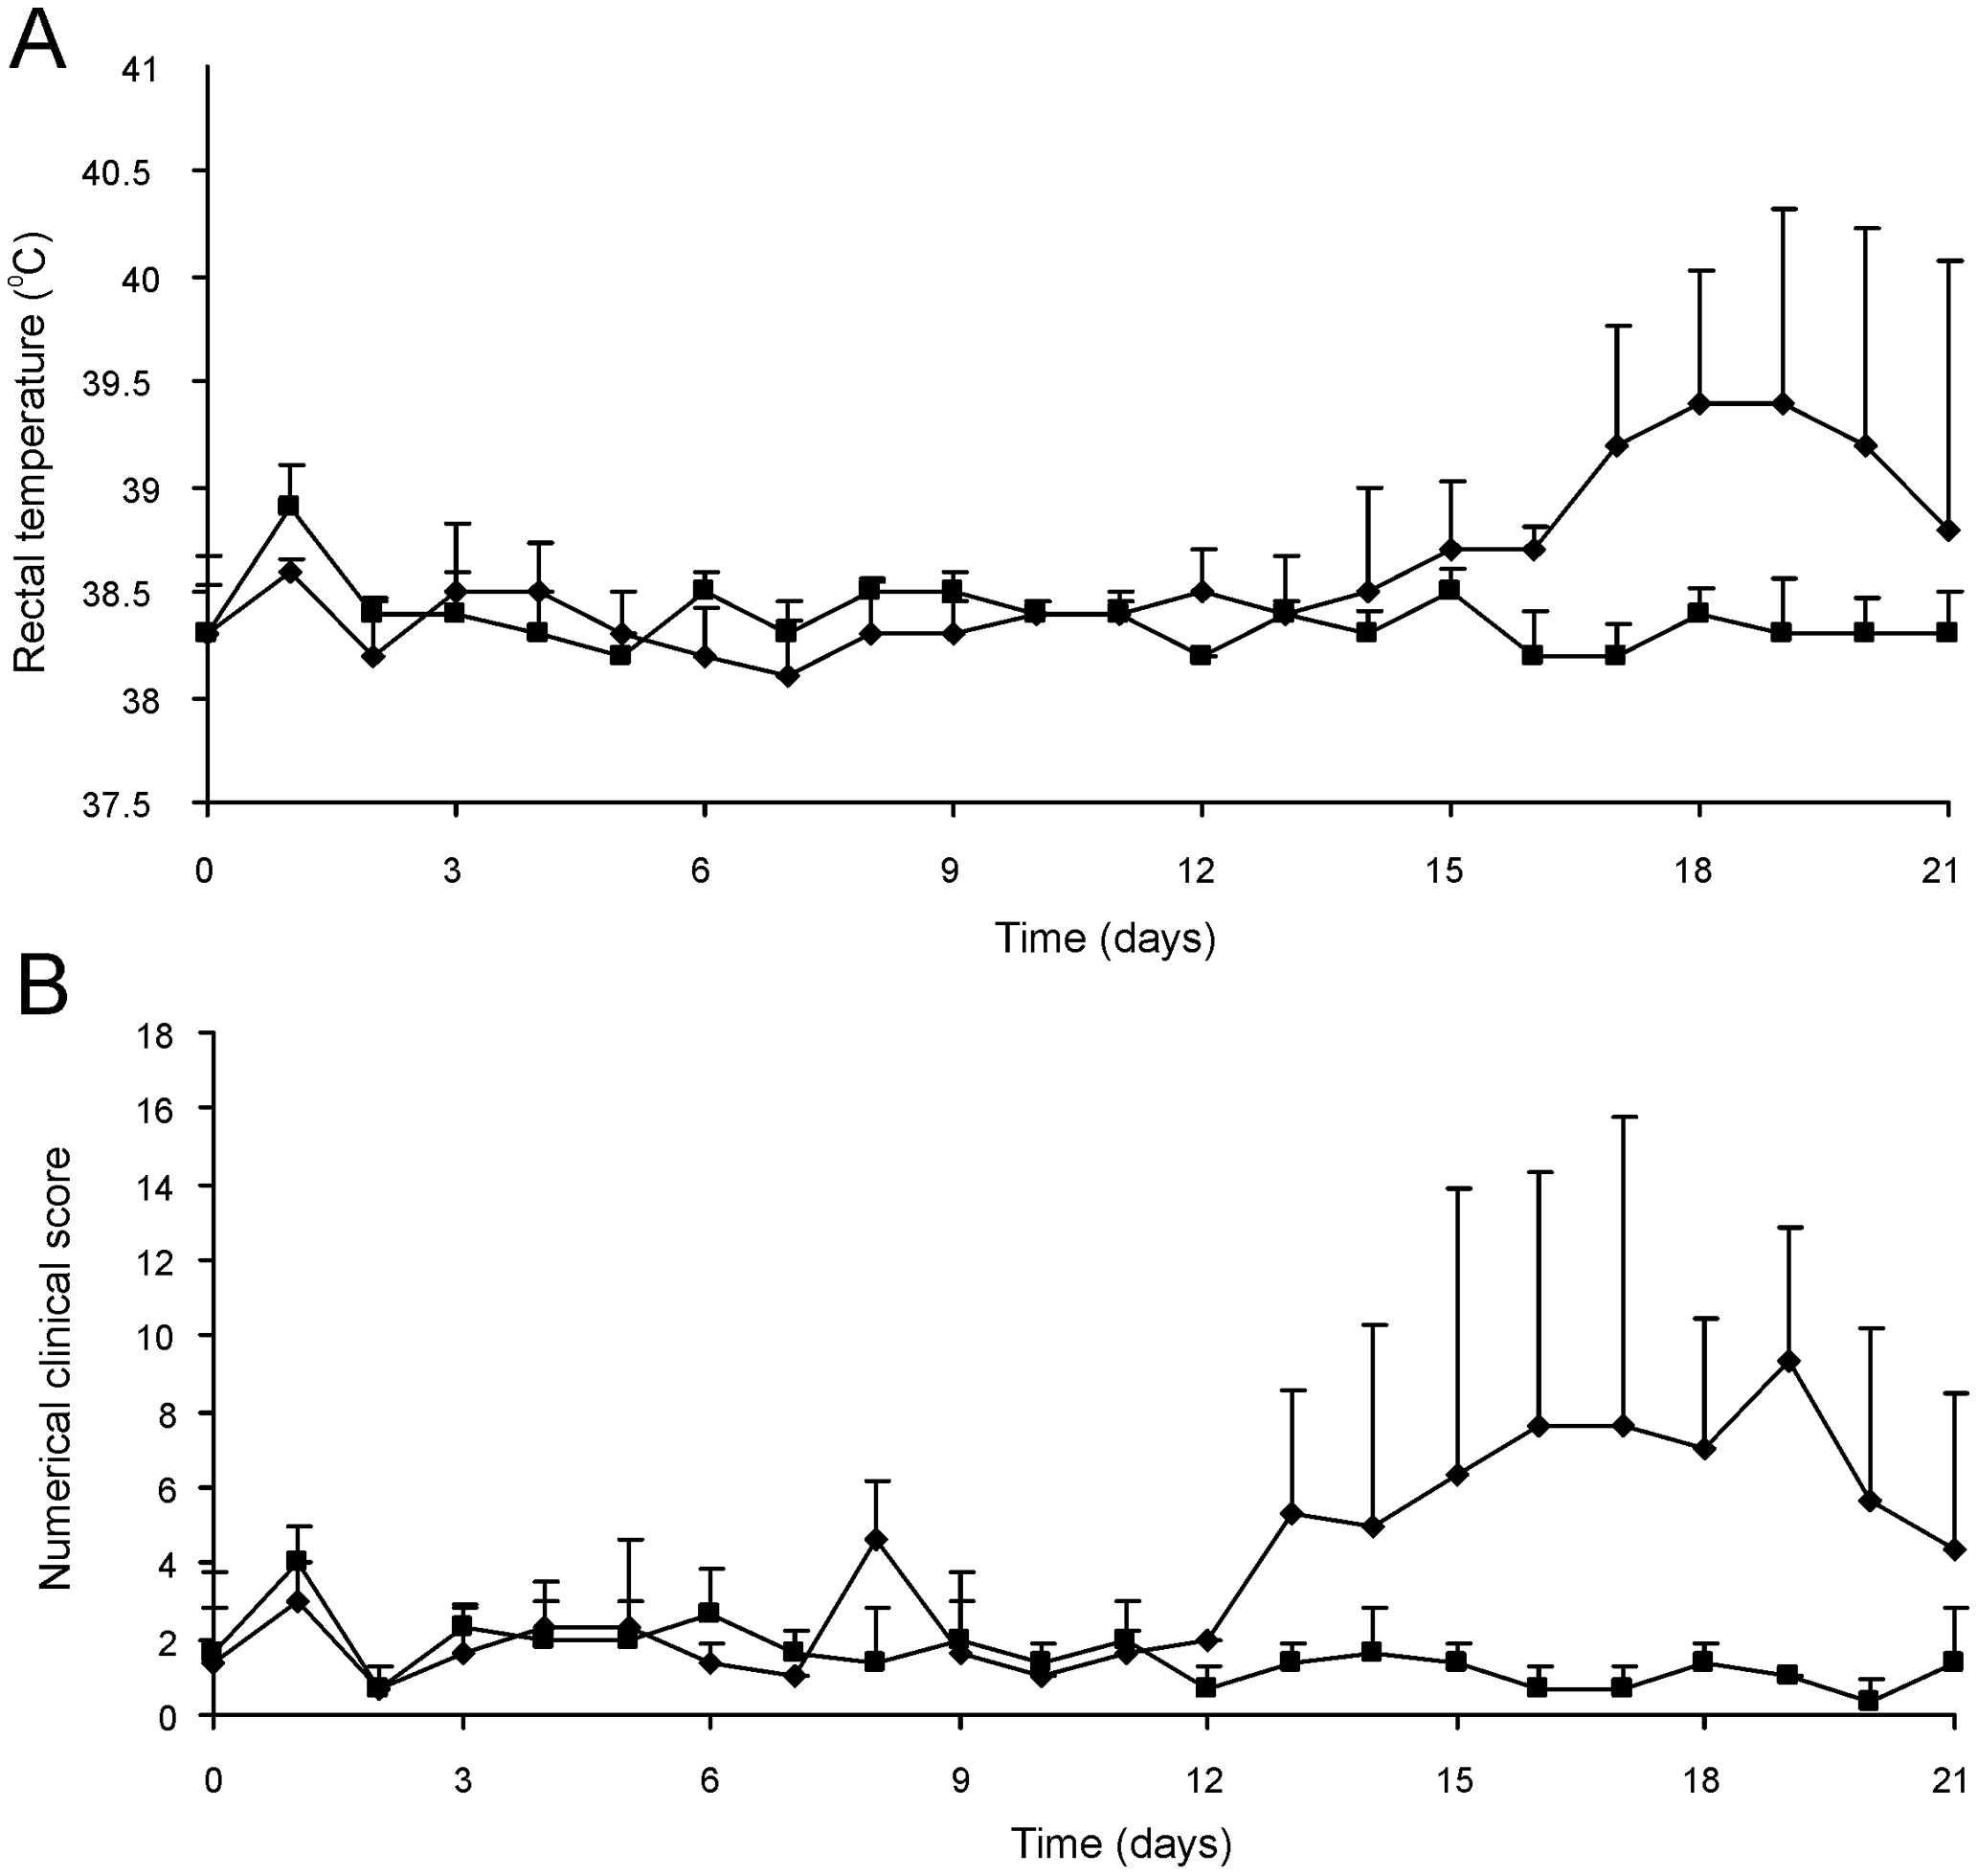 Intratracheal challenge of 3 to 5-week-old foals. Foals (mean of n=3) were challenged intratracheally with mutant <i>R. equi</i> RE1Δ<i>ipdAB</i> (7.1×10<sup>6</sup> CFU; squares) or wild type RE1 (4.3×10<sup>6</sup> CFU; diamonds).